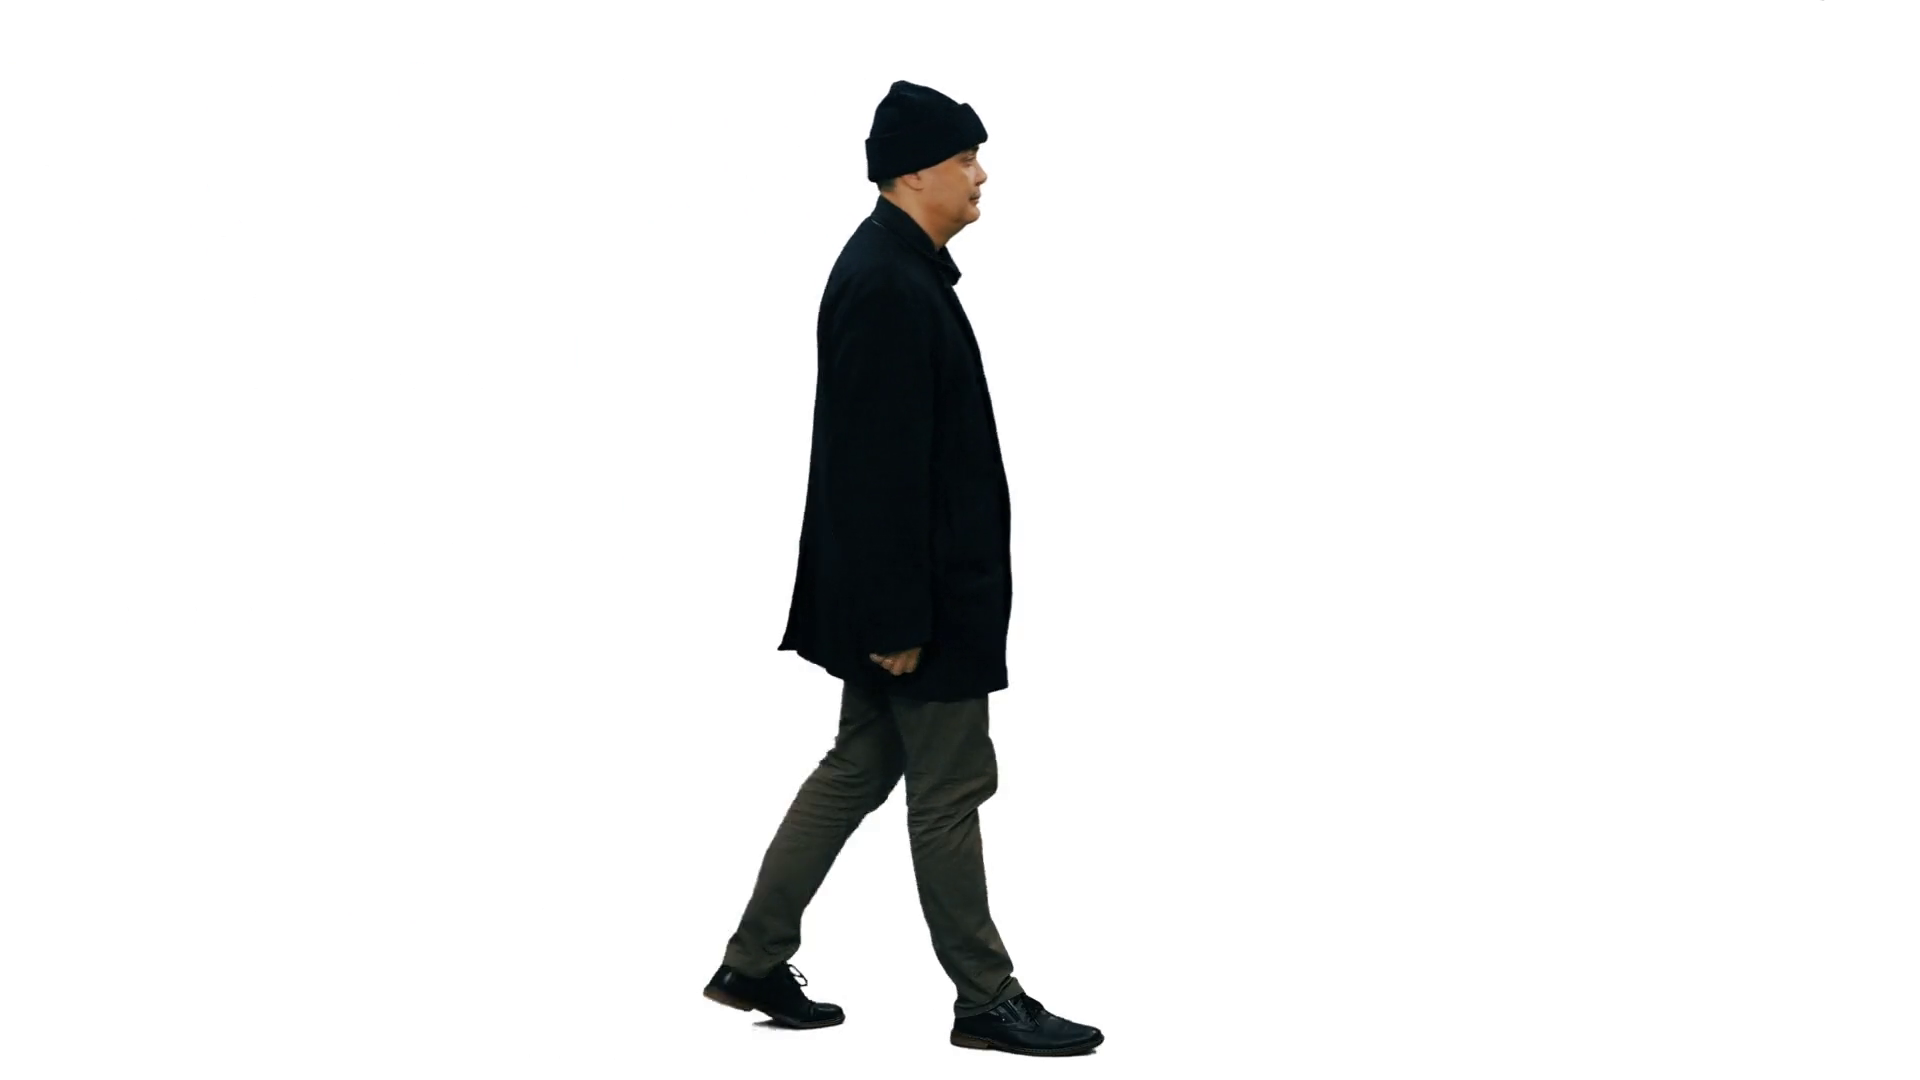 videoblocks-side-view-of-a-man-in-black- - Side View Of A Person Standing PNG